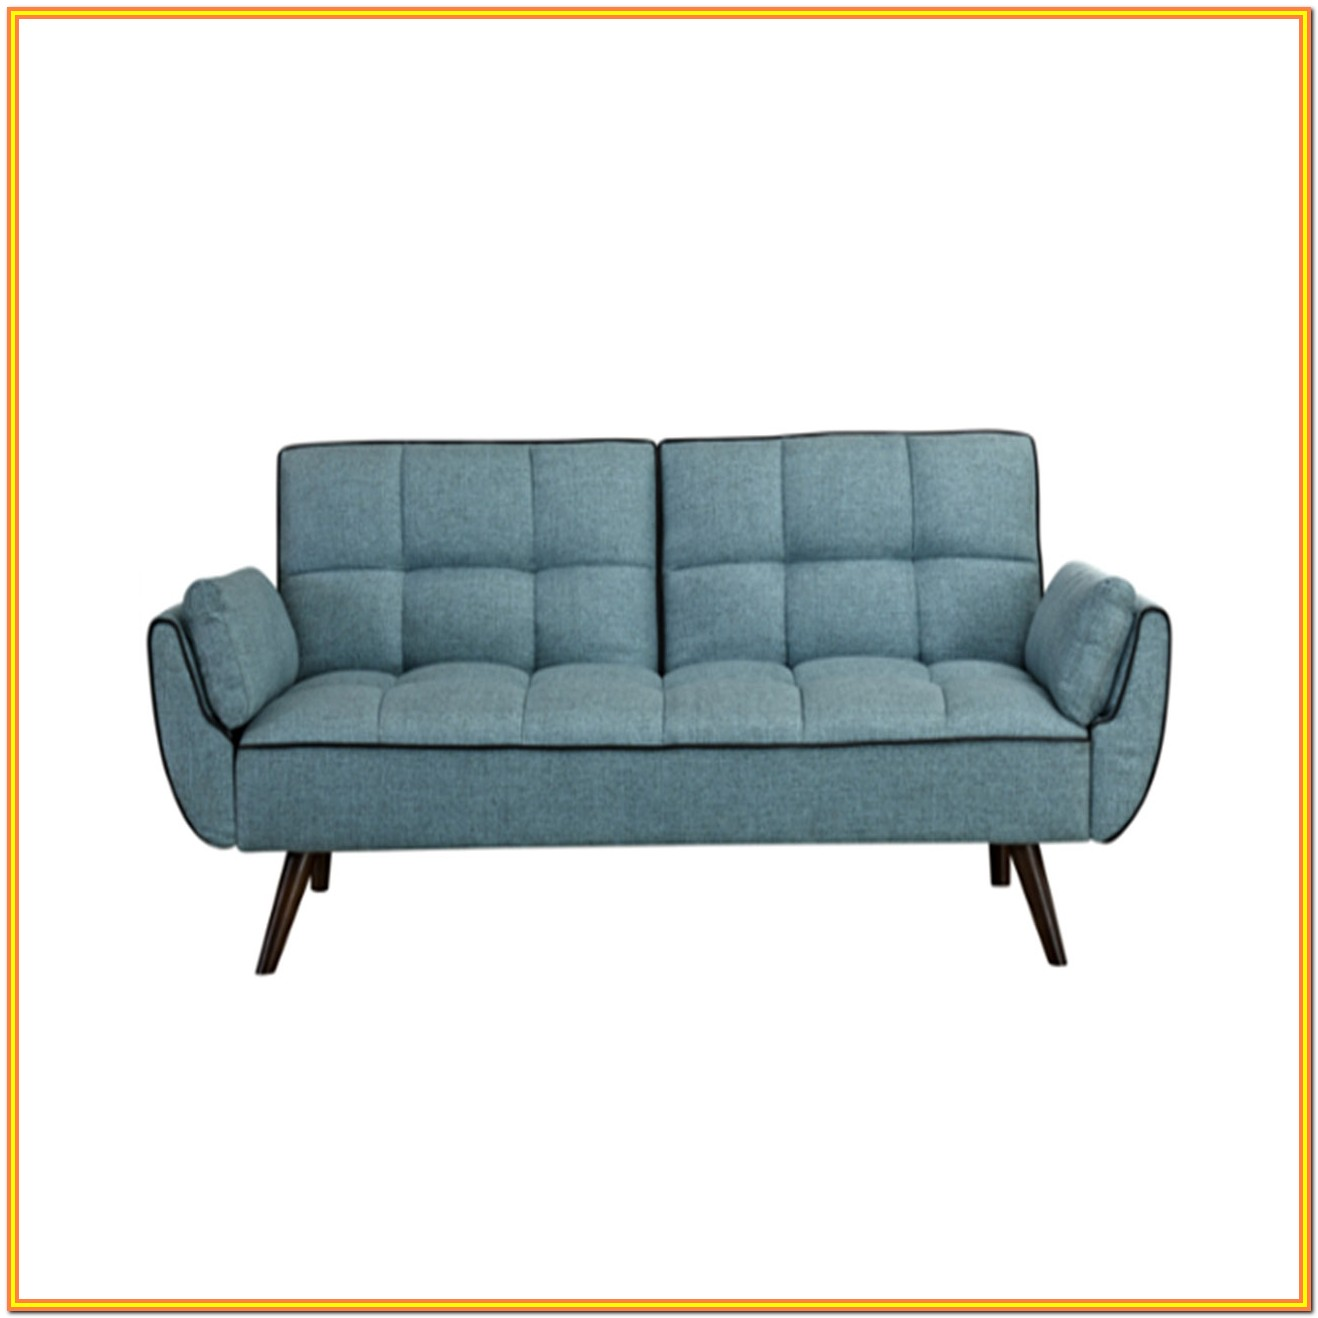 Sofa Bed With Storage Philippines